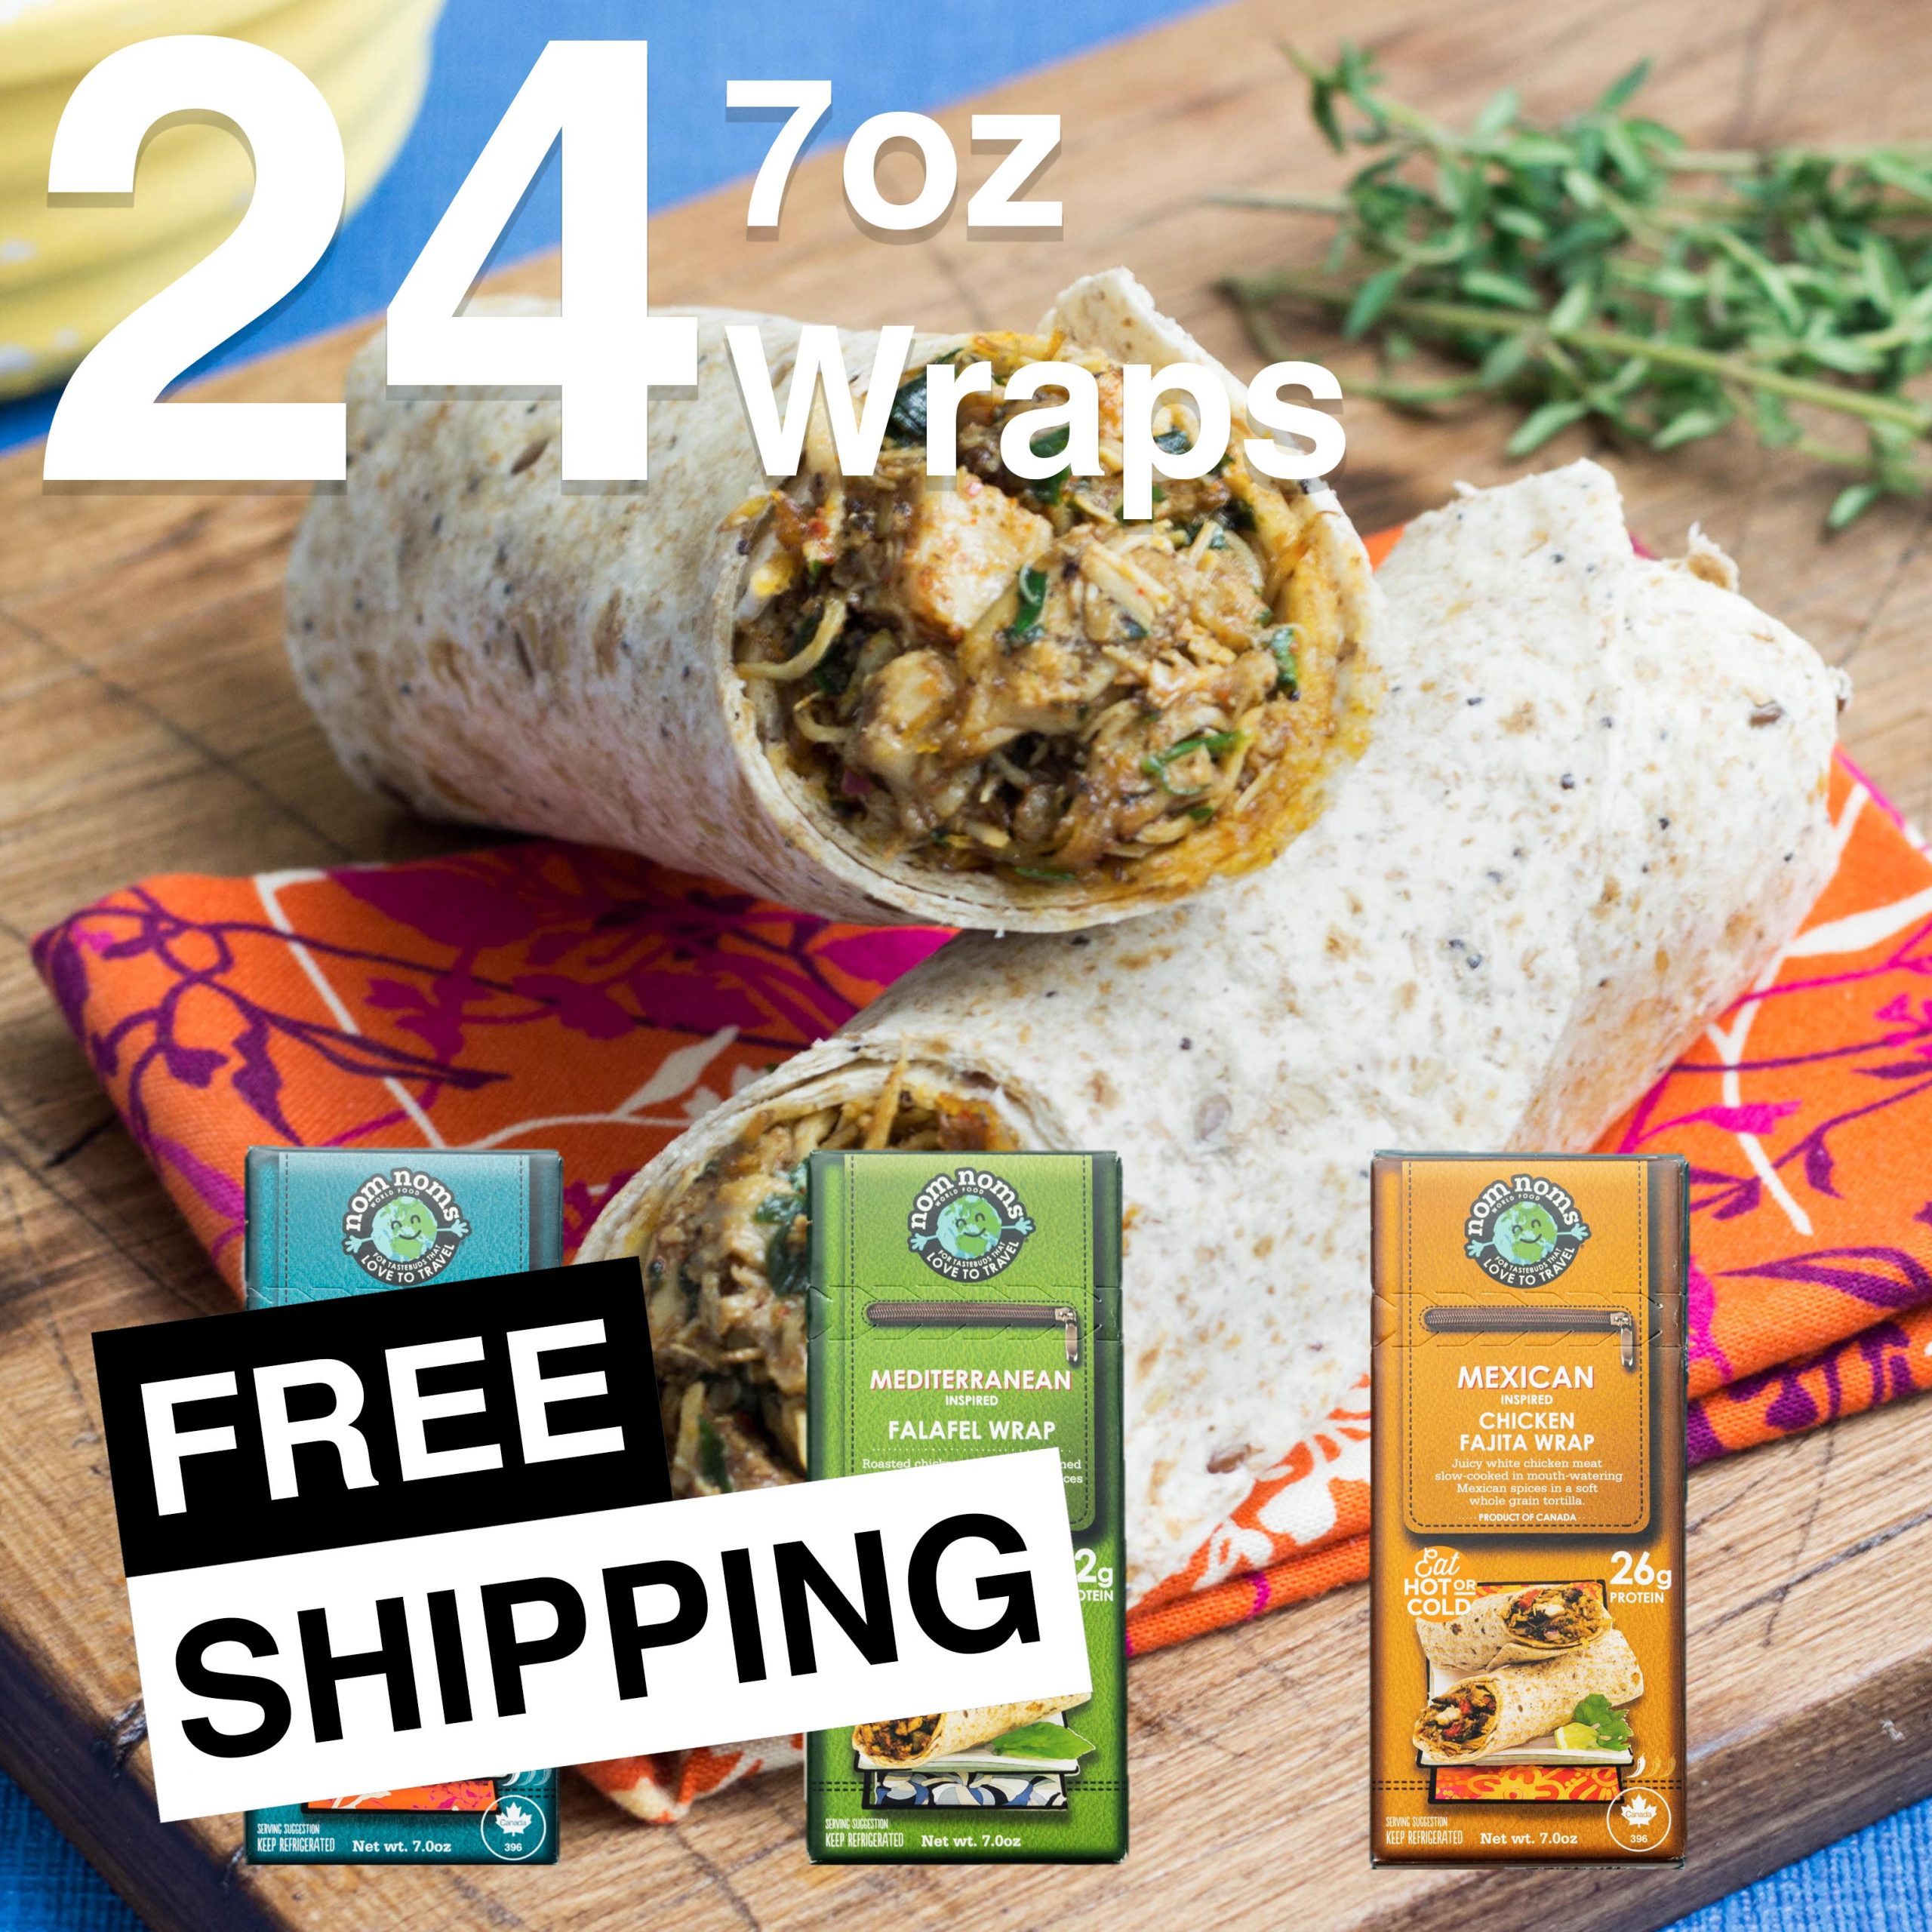 24 7oz Wraps 3 Flavors Feature